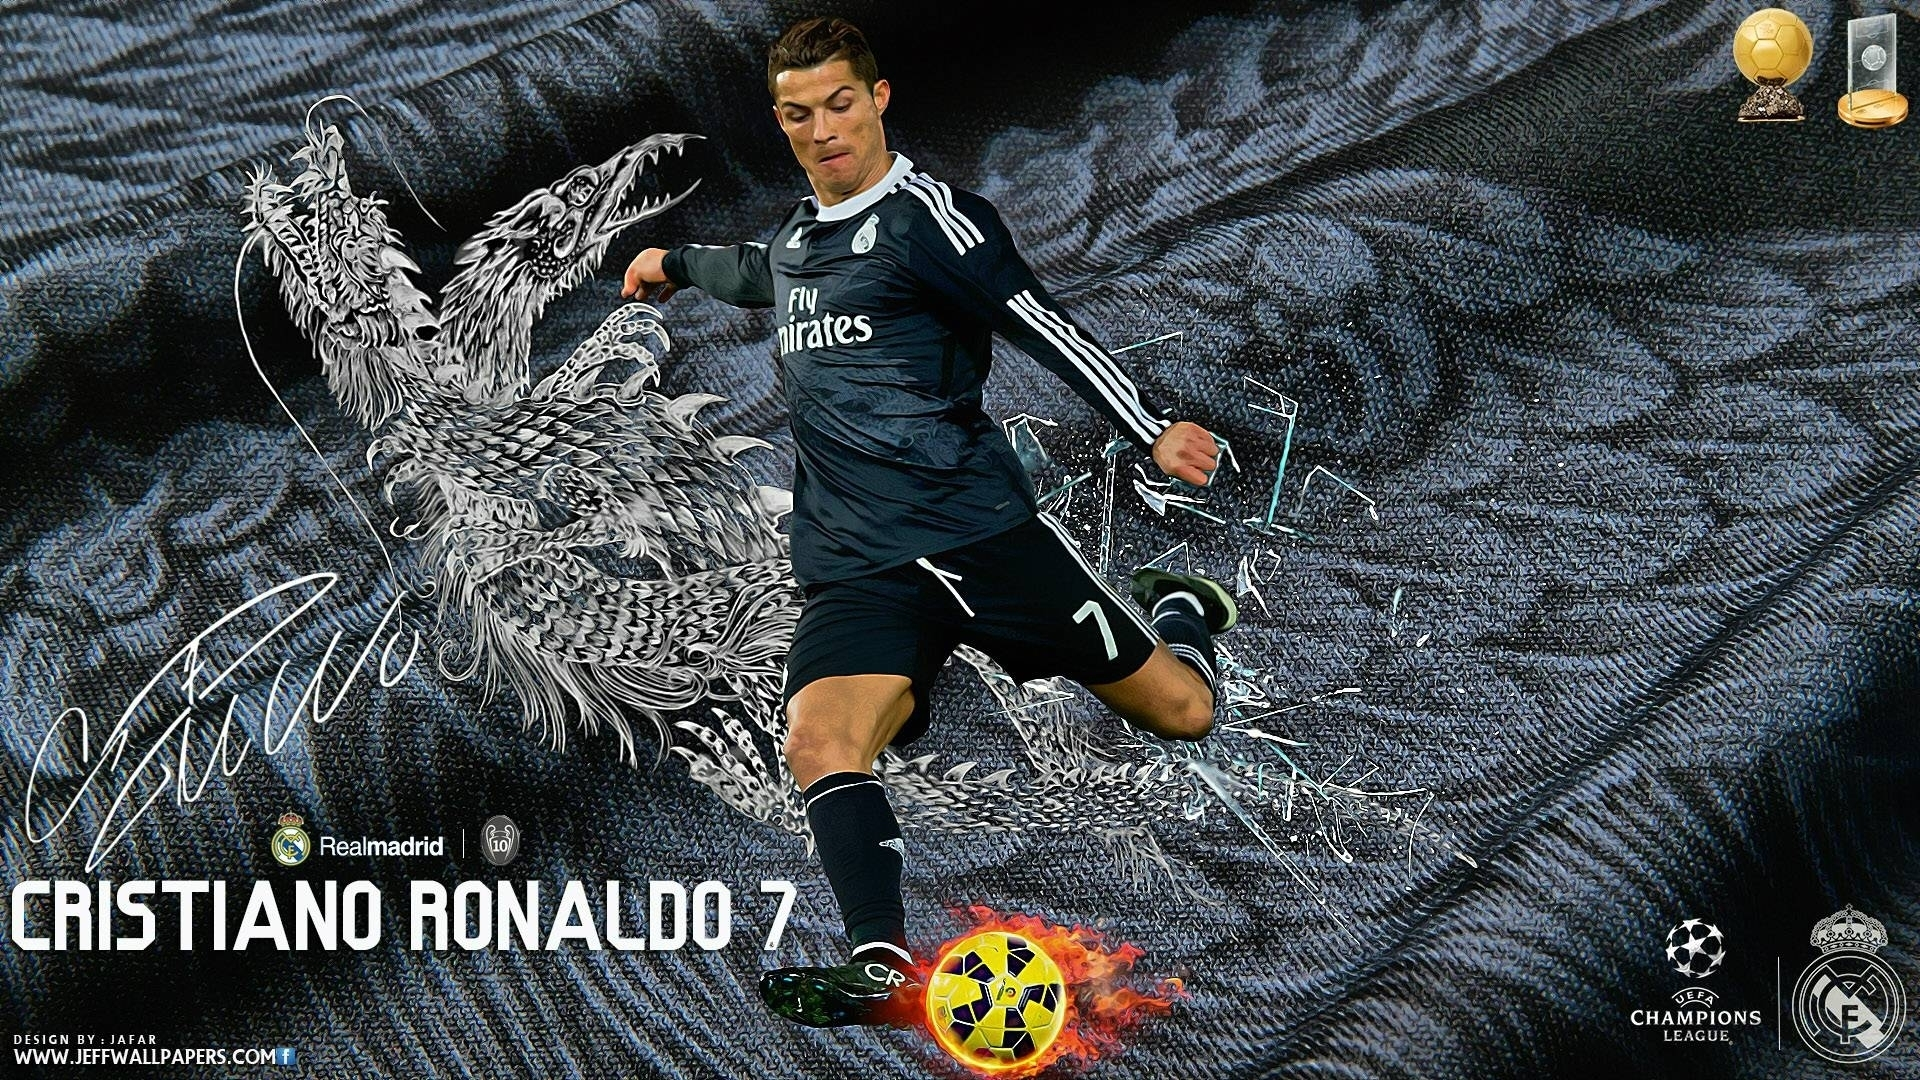 10 Best Cristiano Ronaldo 2015 Wallpaper FULL HD 1920×1080 For PC Desktop